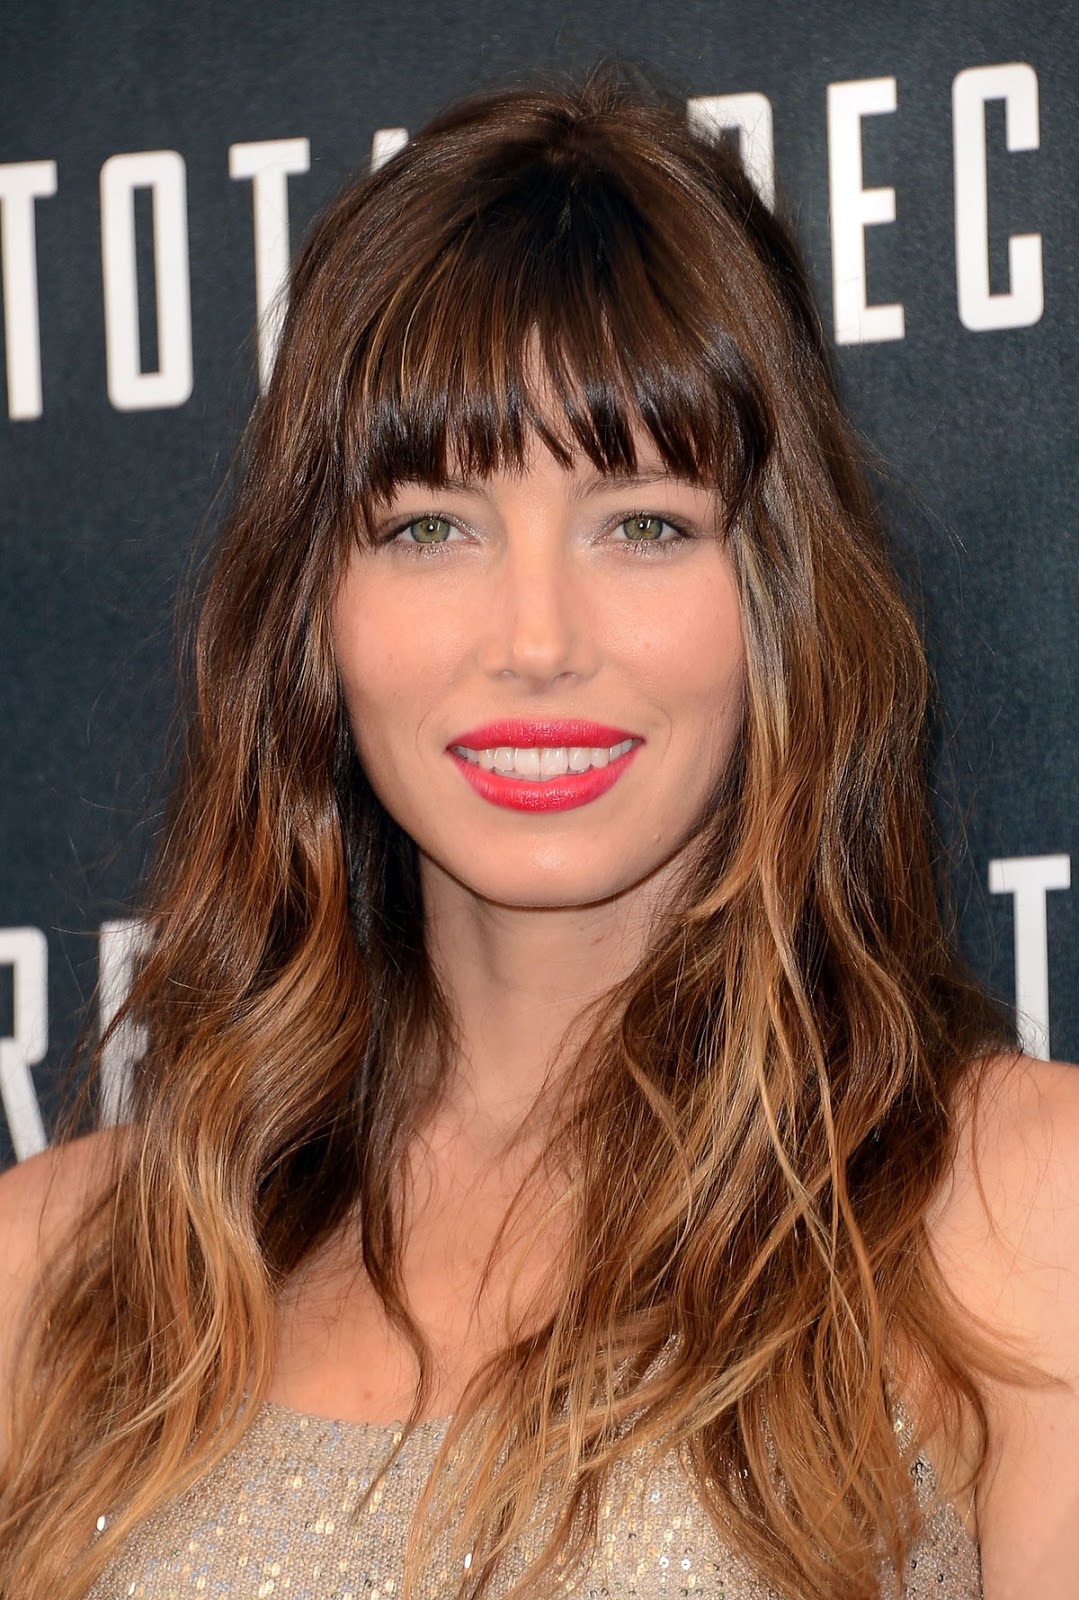 journal dune beauty paresseuse nouvelle obsession capillaire les cheveux de jessica biel sa frange son ombr hair je veux les mmes - Coloration Jean Louis David